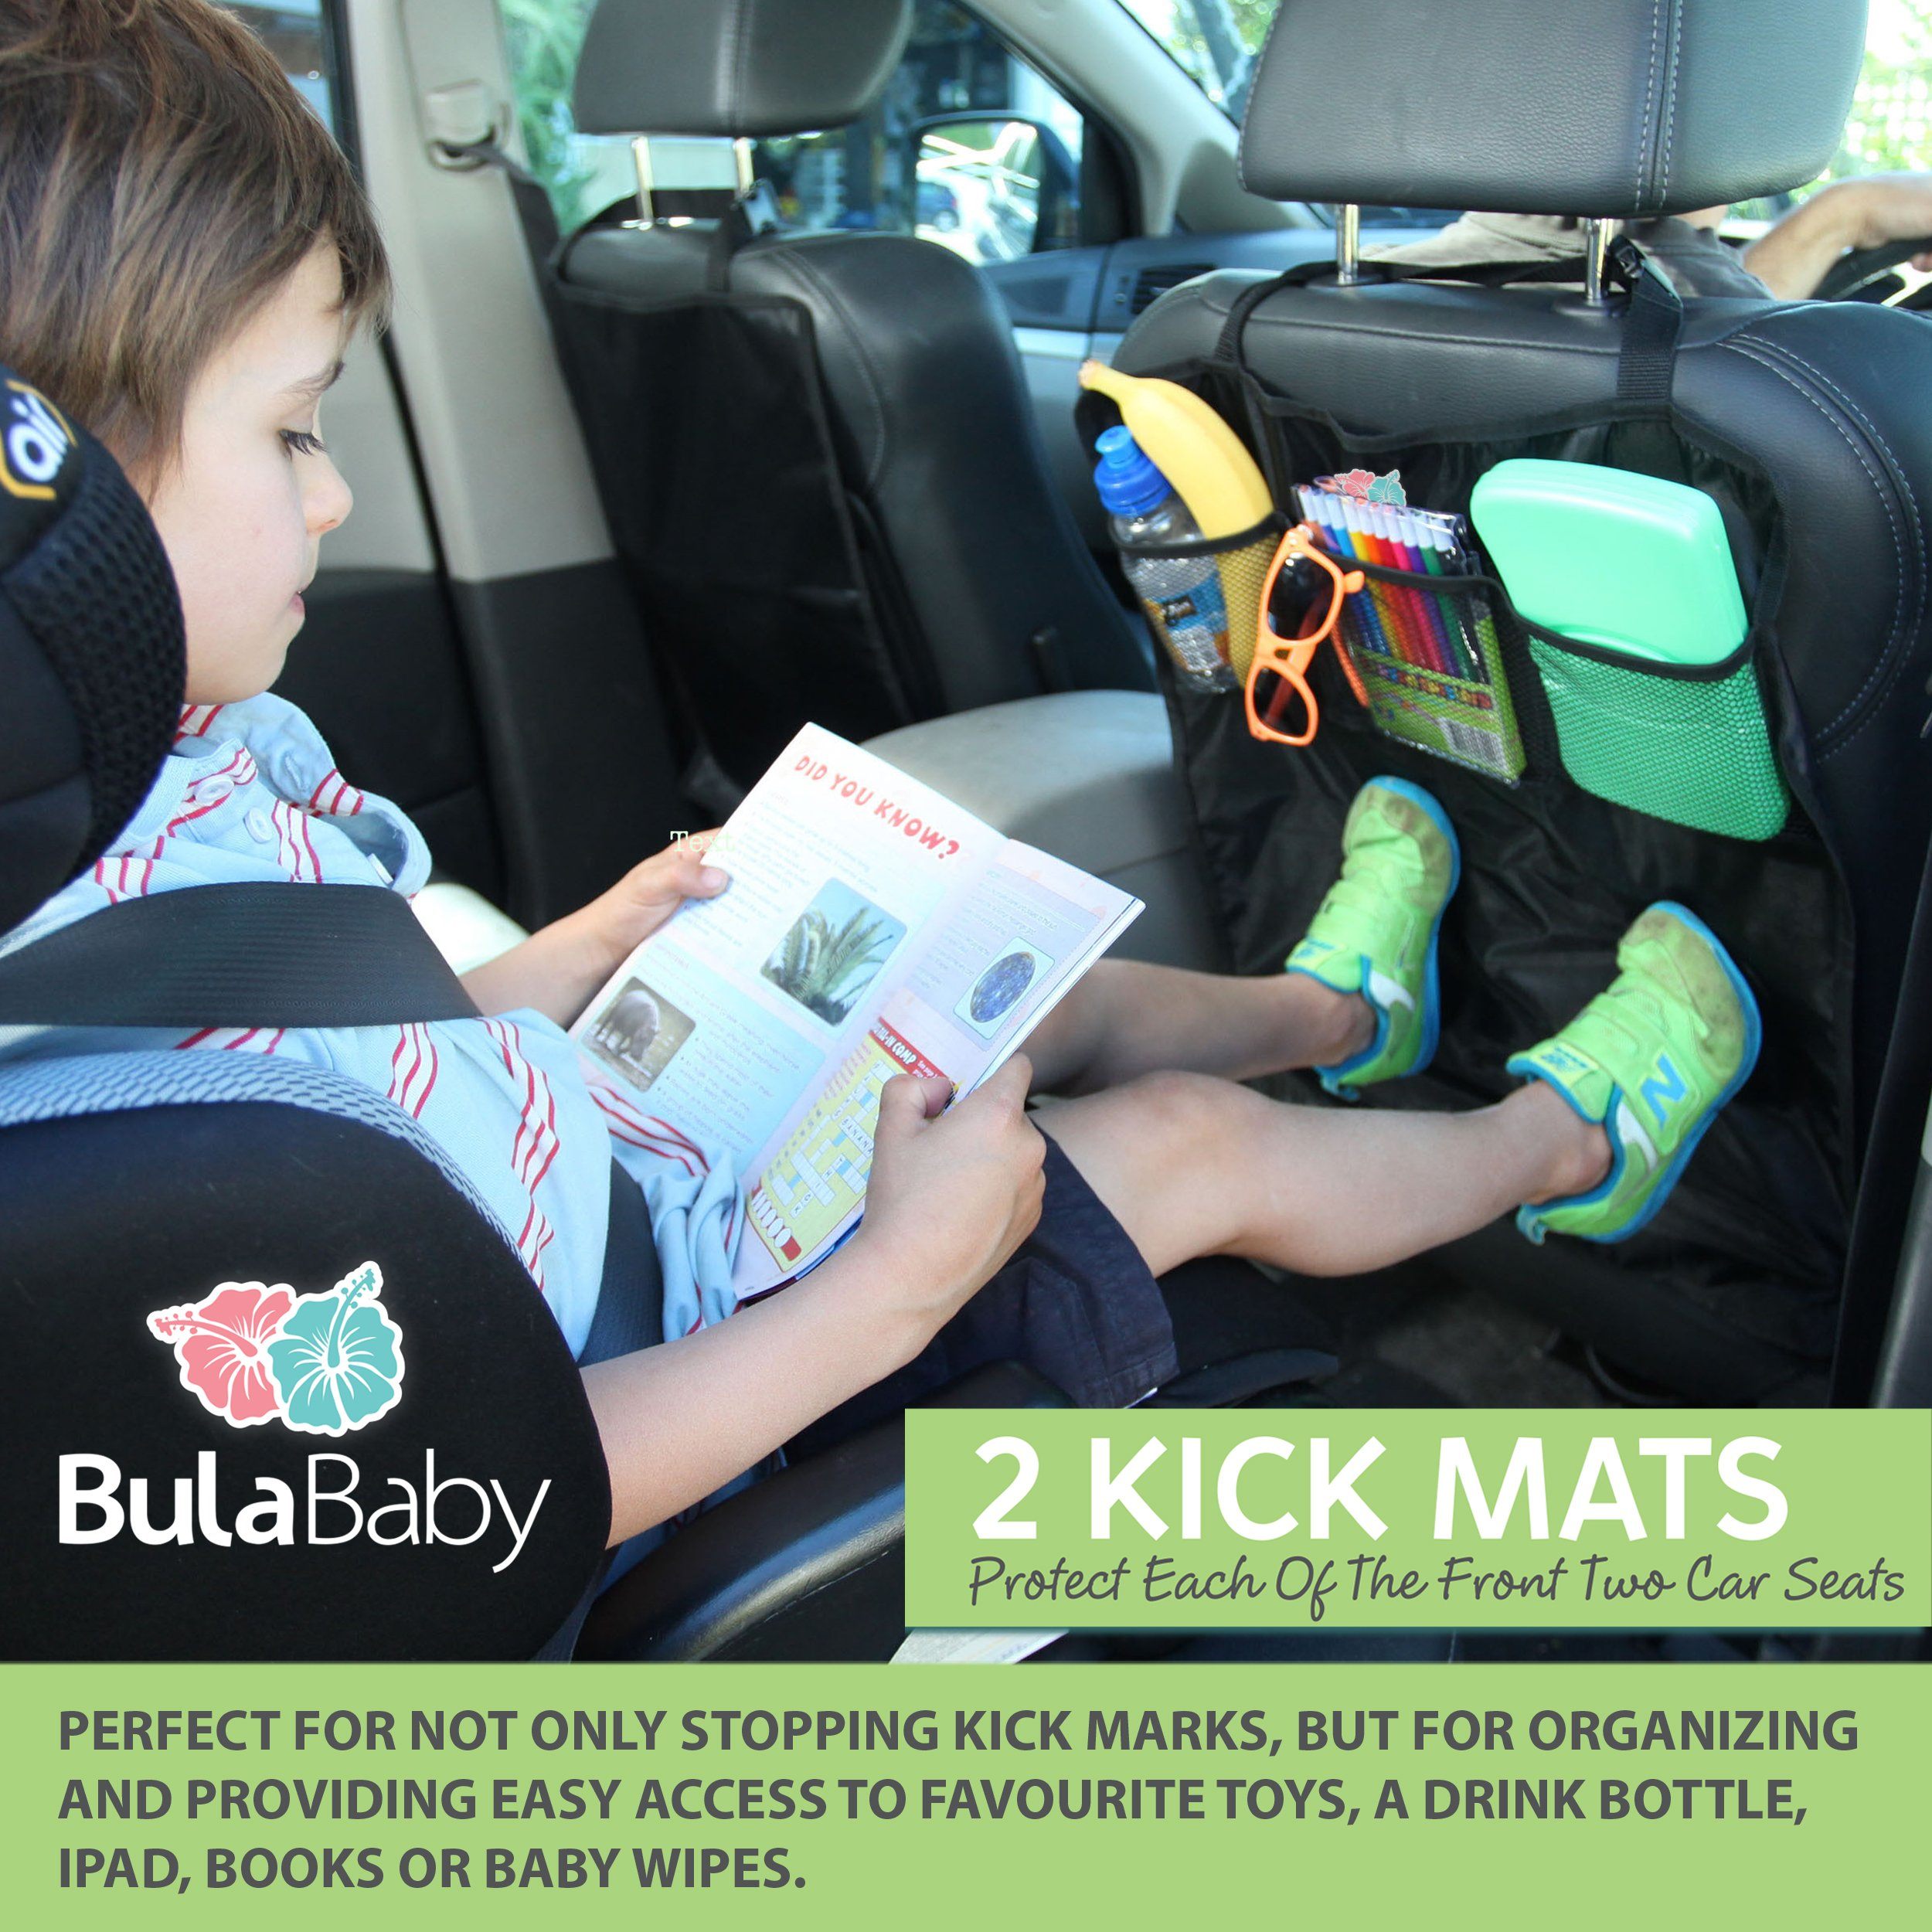 Bula Baby - Back of Seat Protector - 2 Count - Complete With Pocket Organizer by Bula Baby (Image #6)